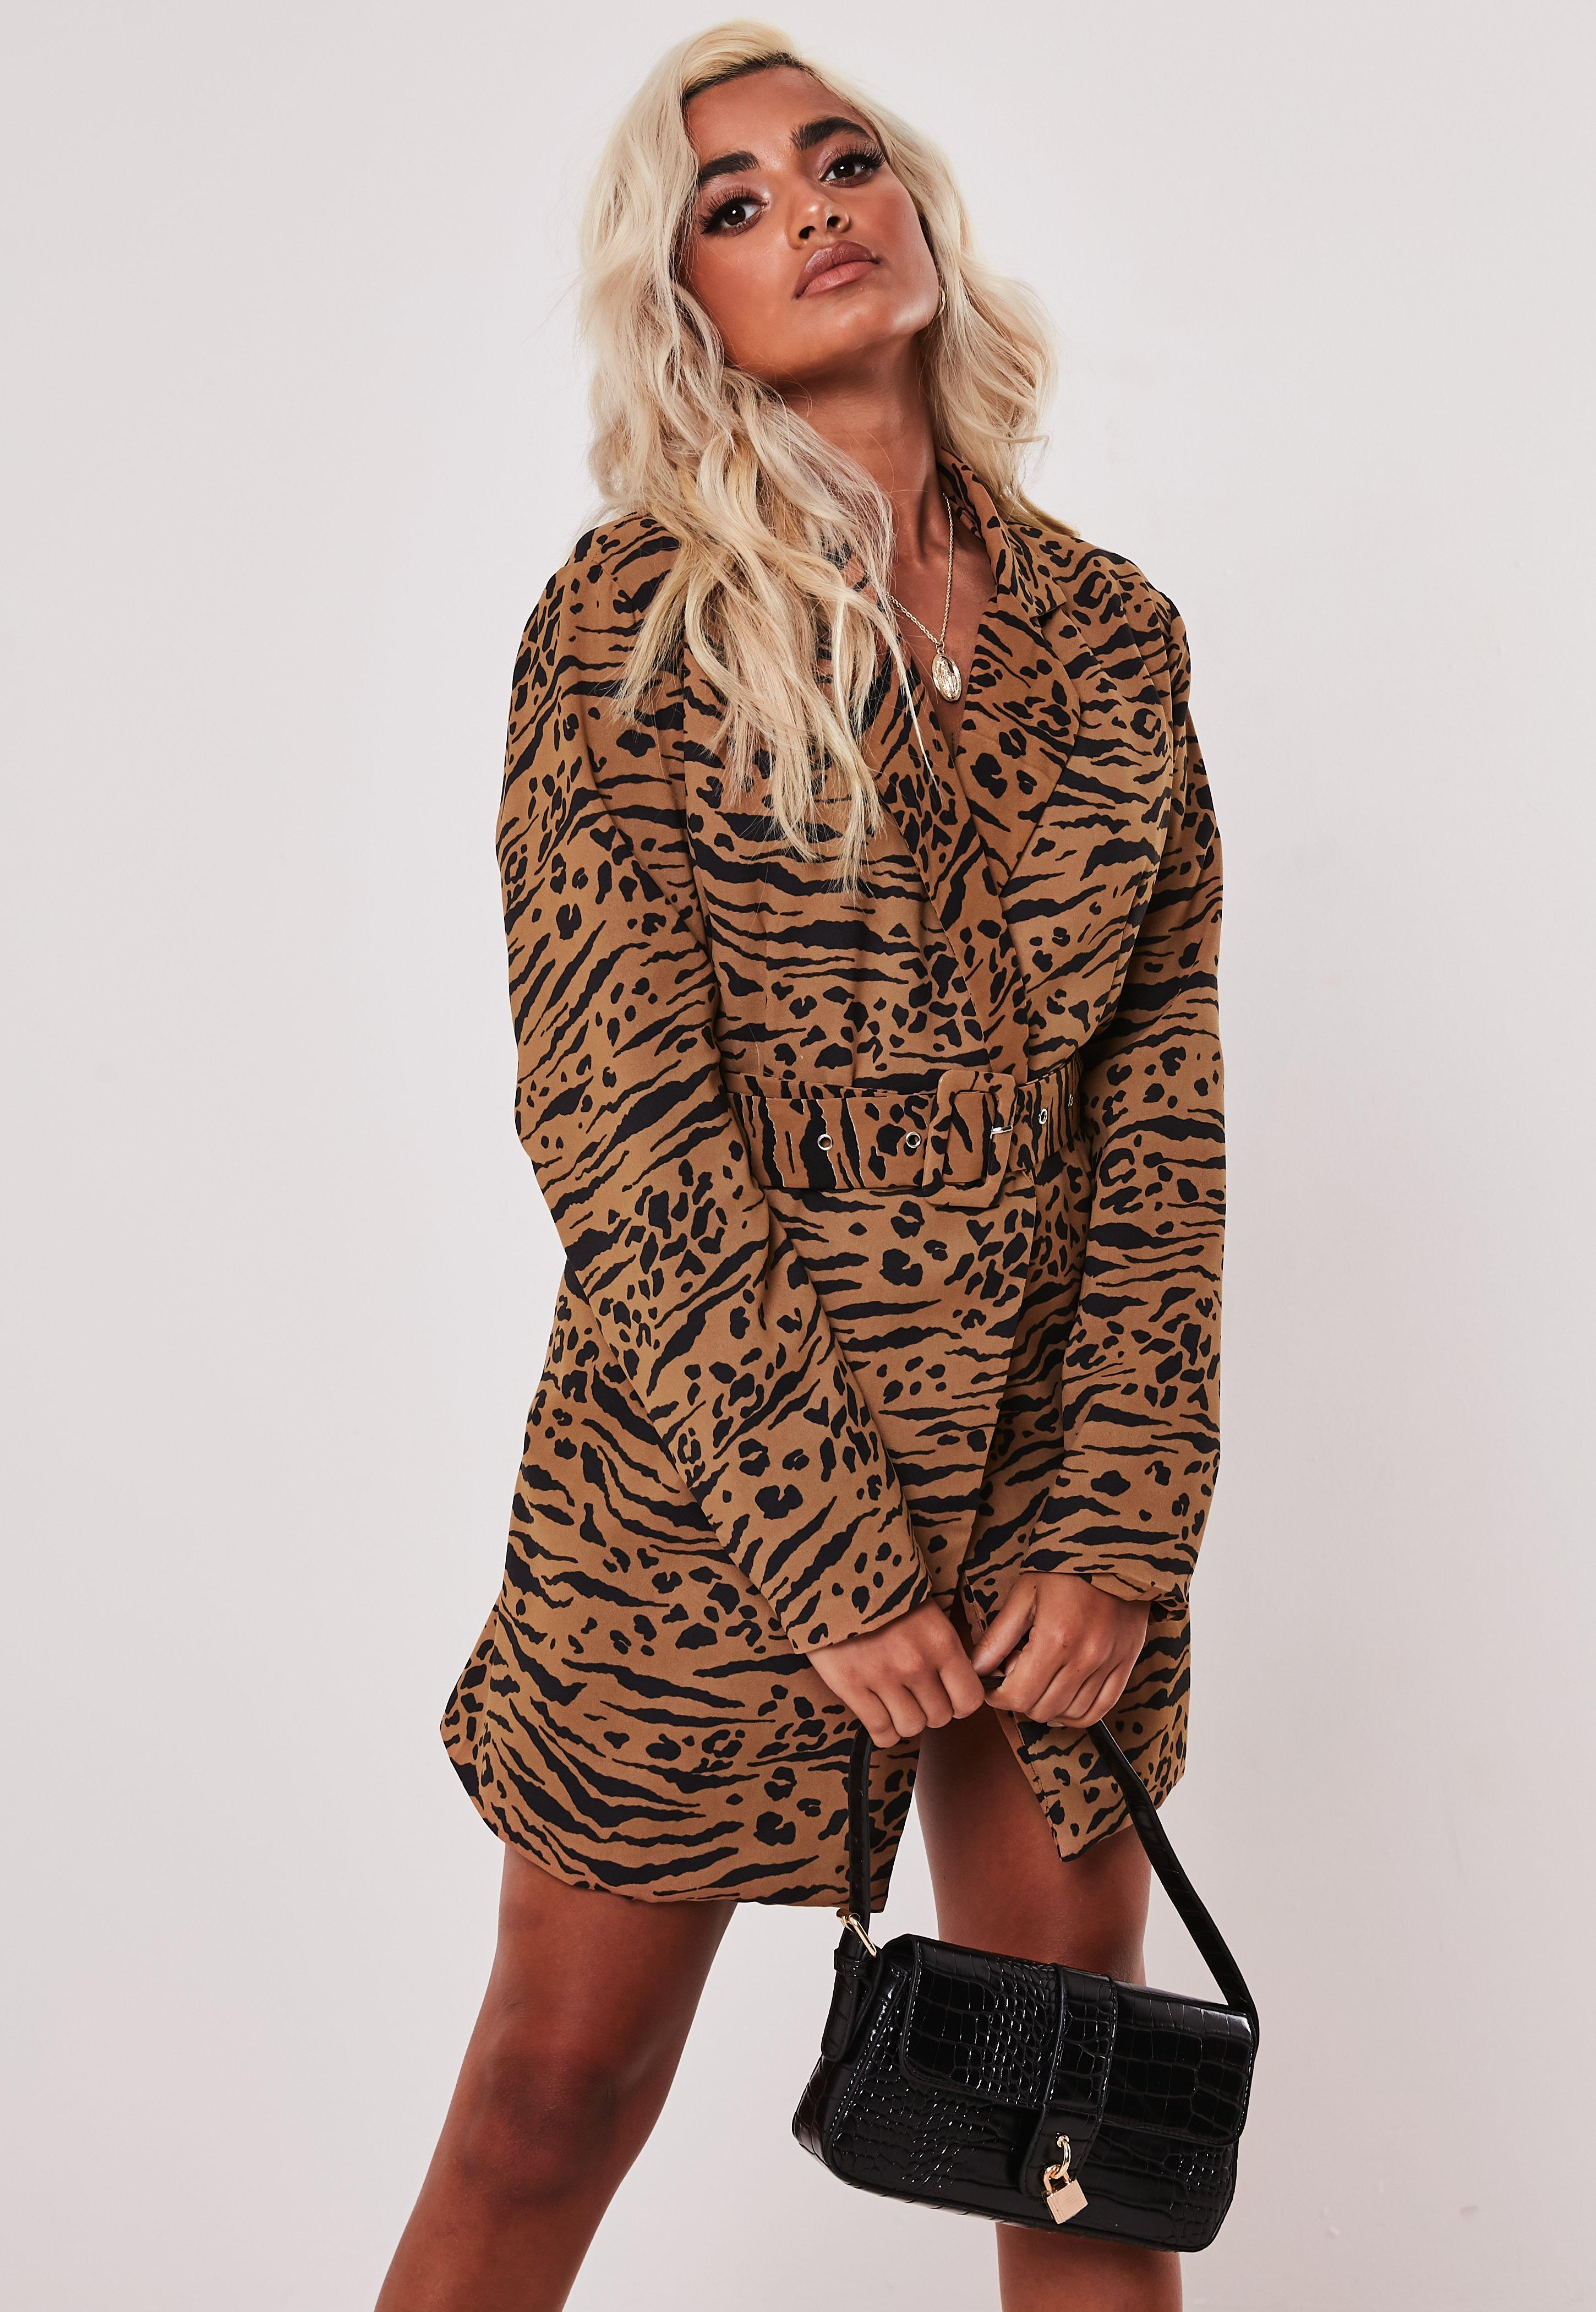 6130f52058e8 Petite Clothing | Womens Petite Clothes Online - Missguided